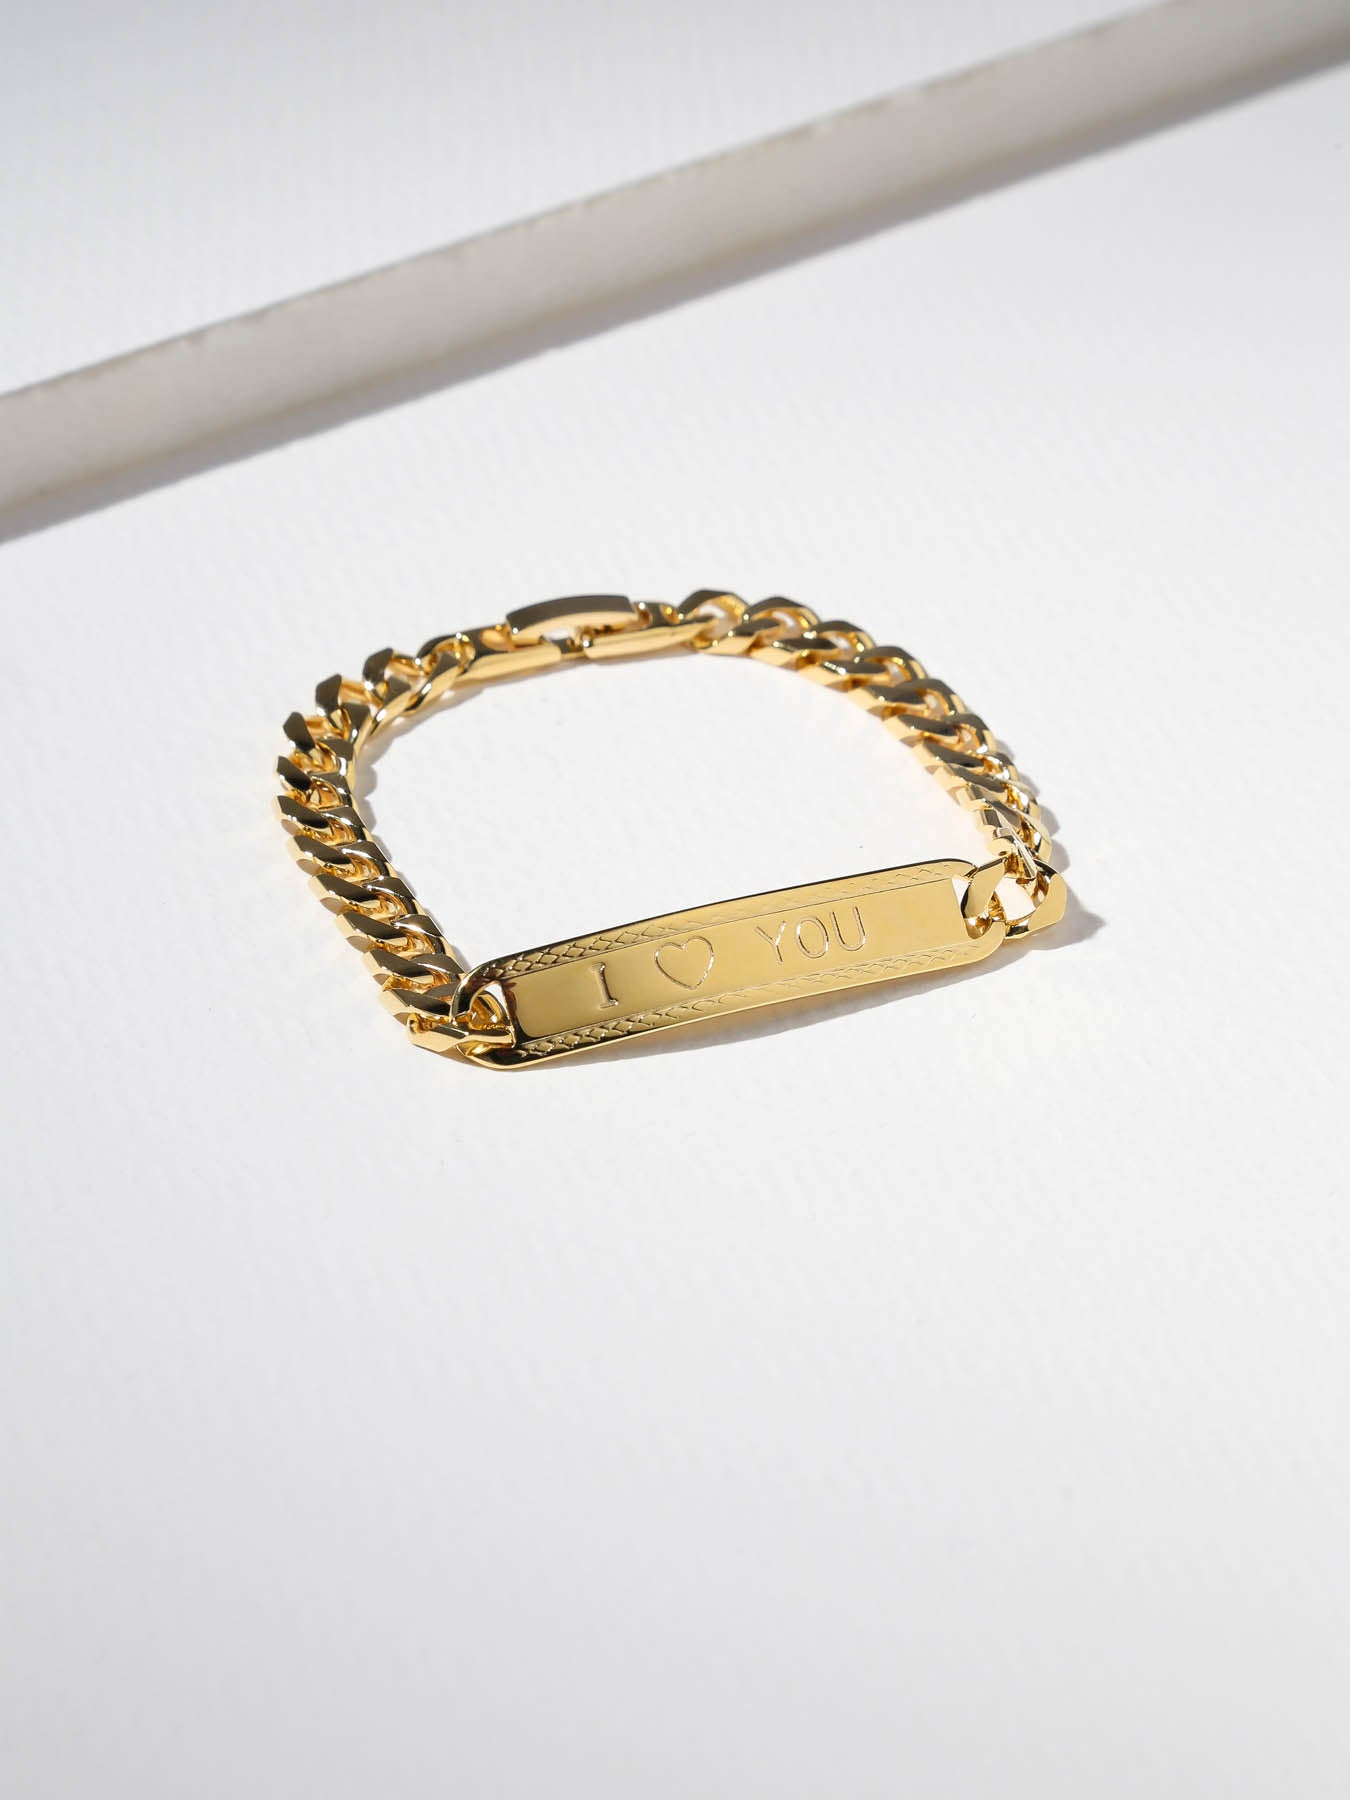 The I Heart You ID Bracelet